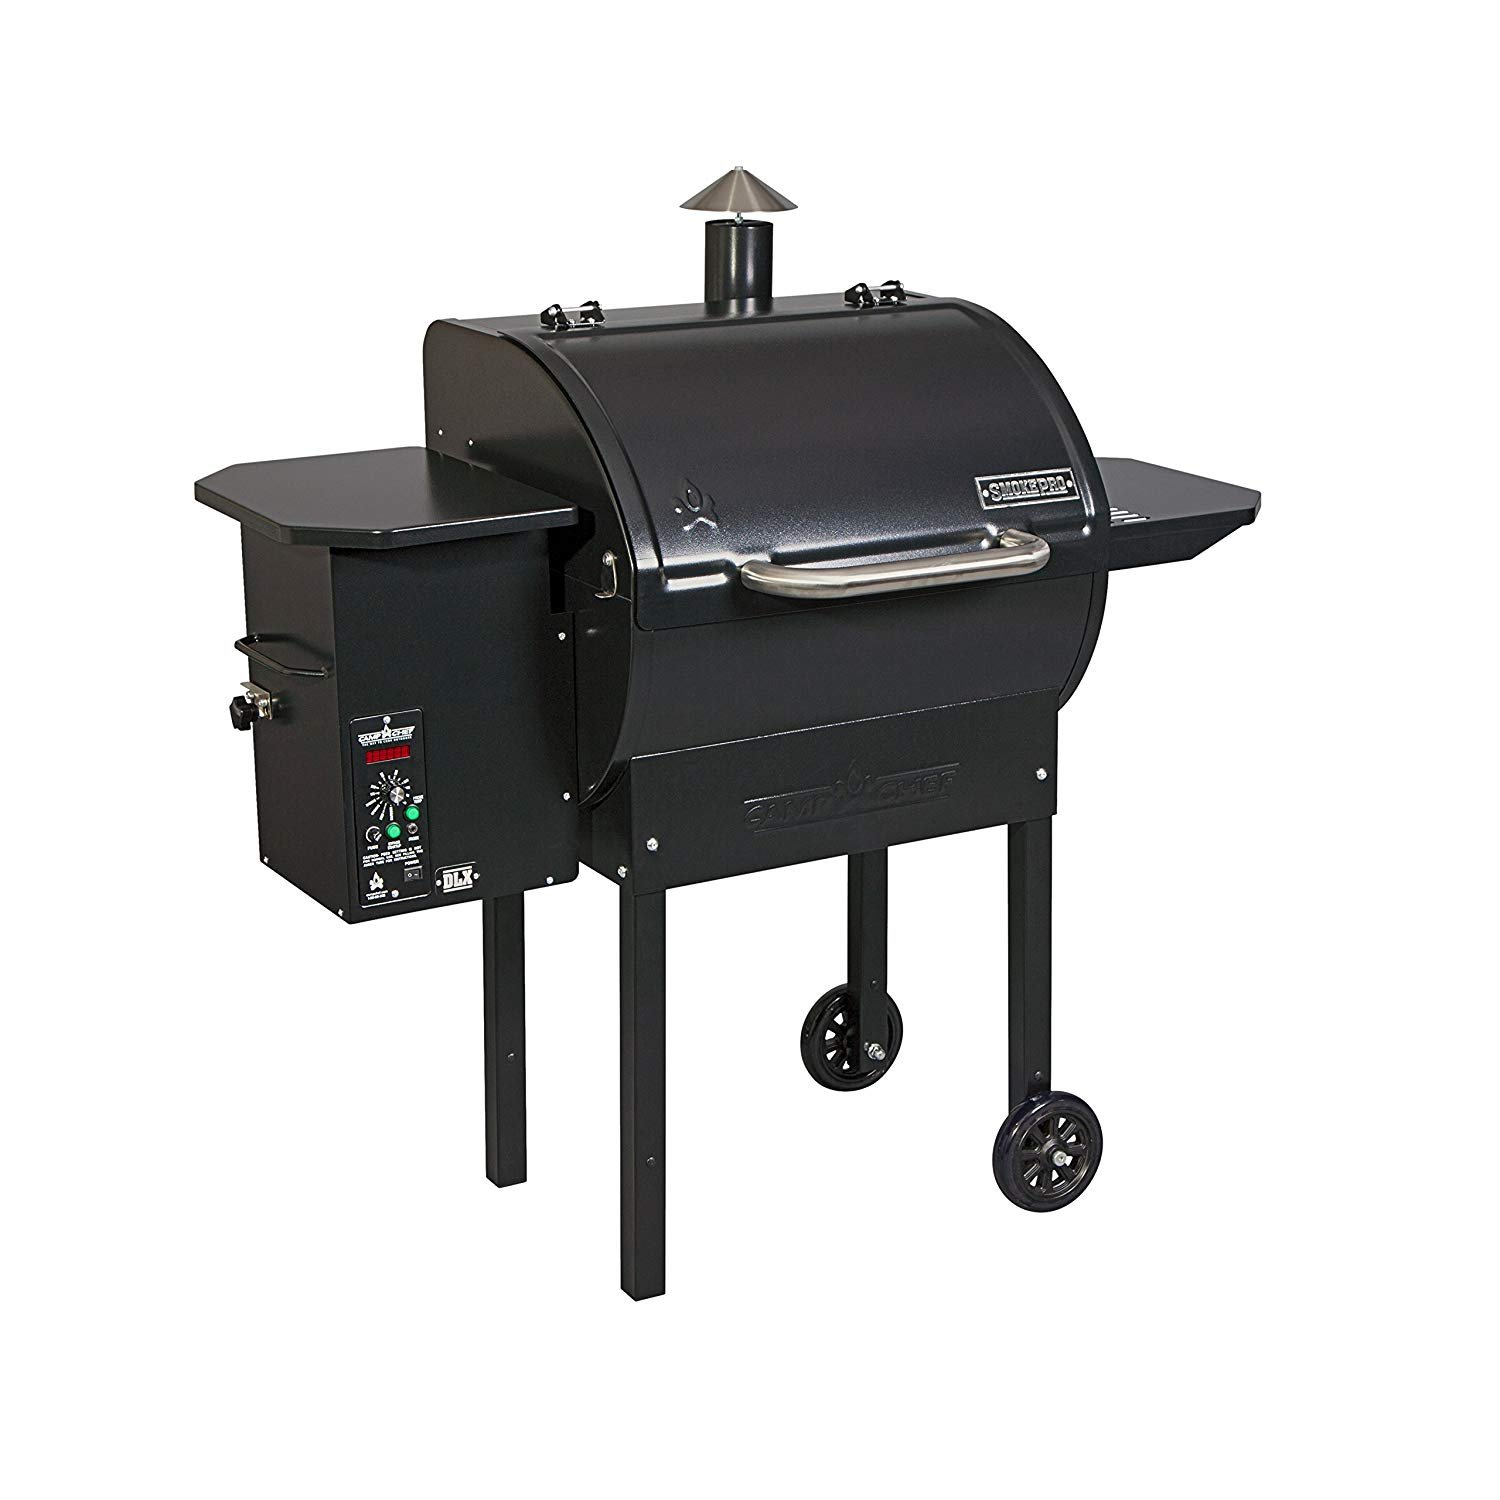 Camp Chef PG24DLX Deluxe Wood Pellet & Smoker Grill Review